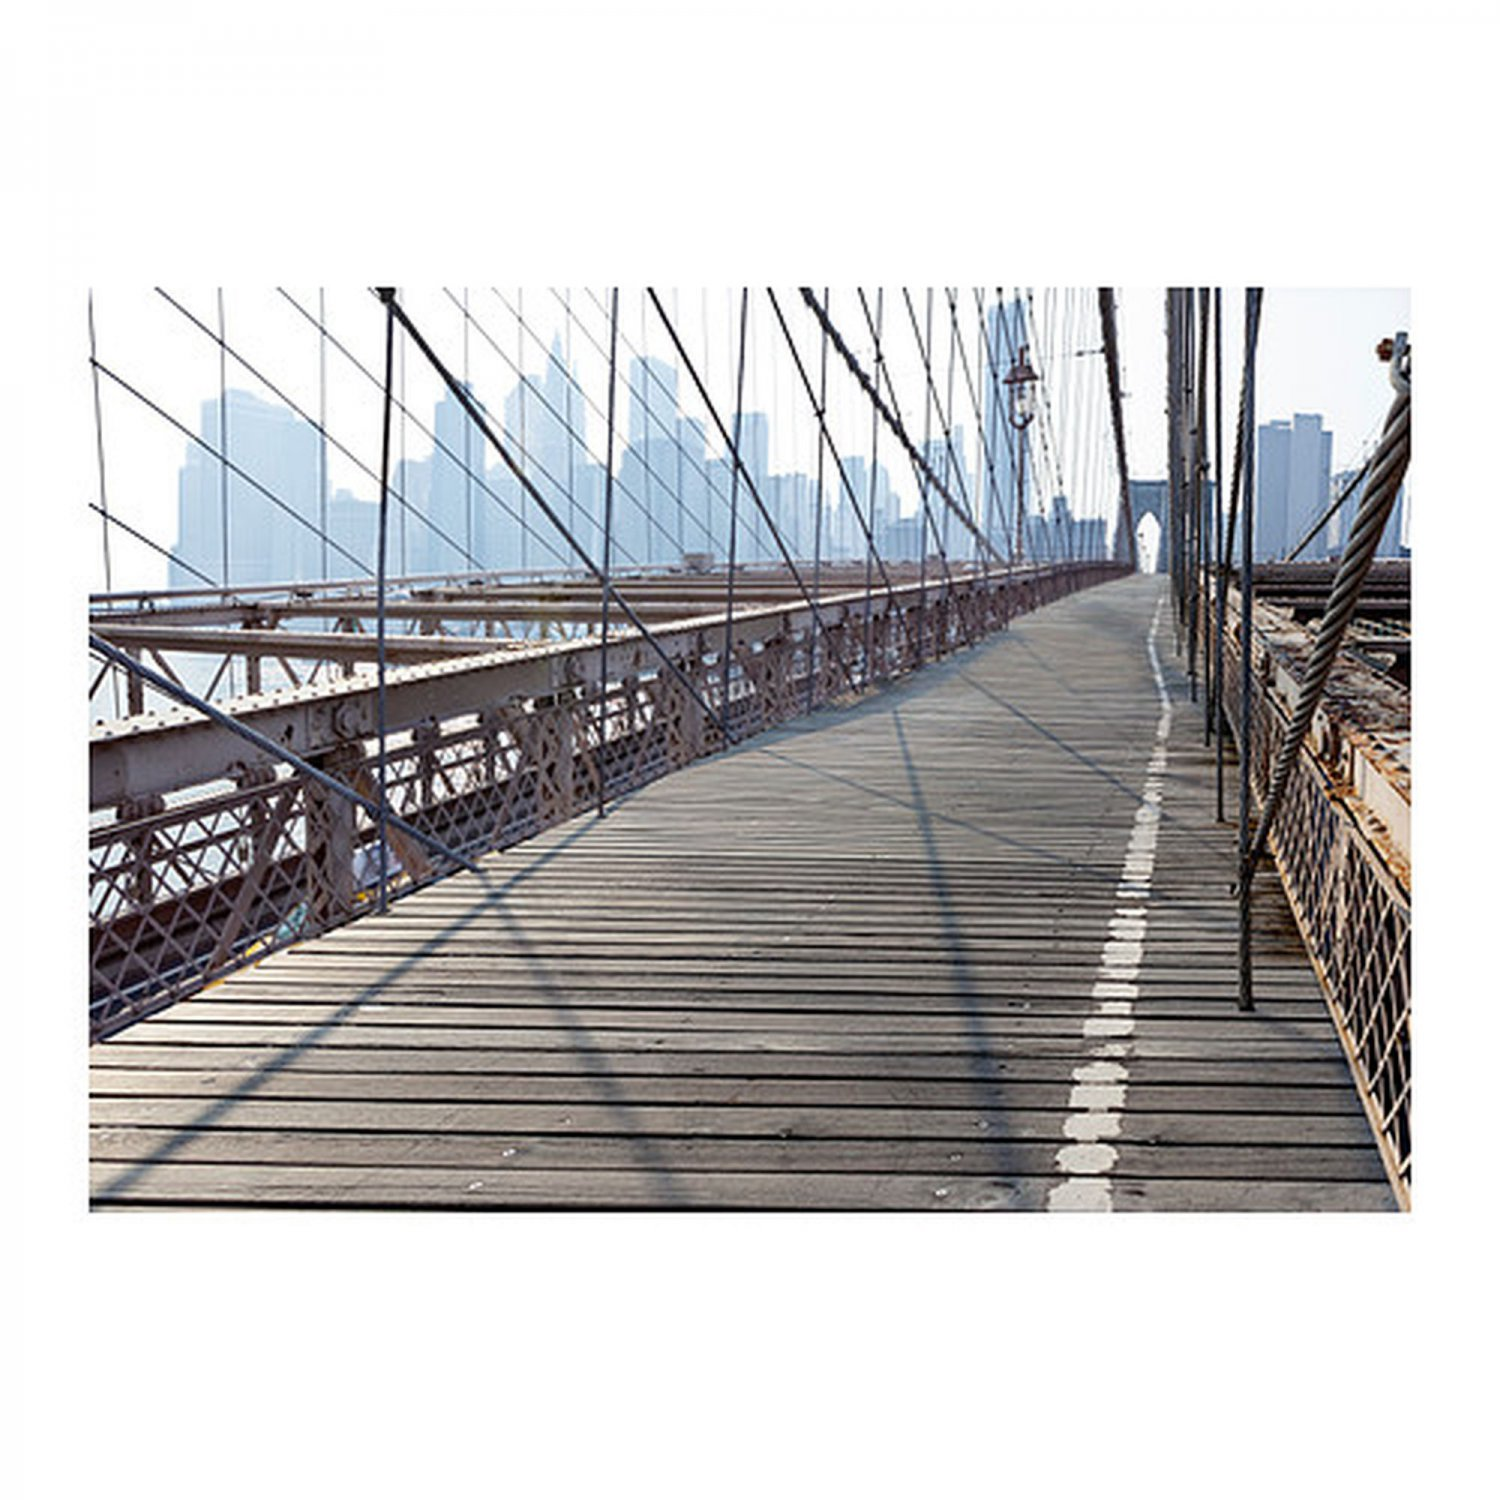 New York Poster Ikea Ikea Premiar Brooklyn Bridge Canvas And Frame Wall Art Huge Ny Print PremiÃr